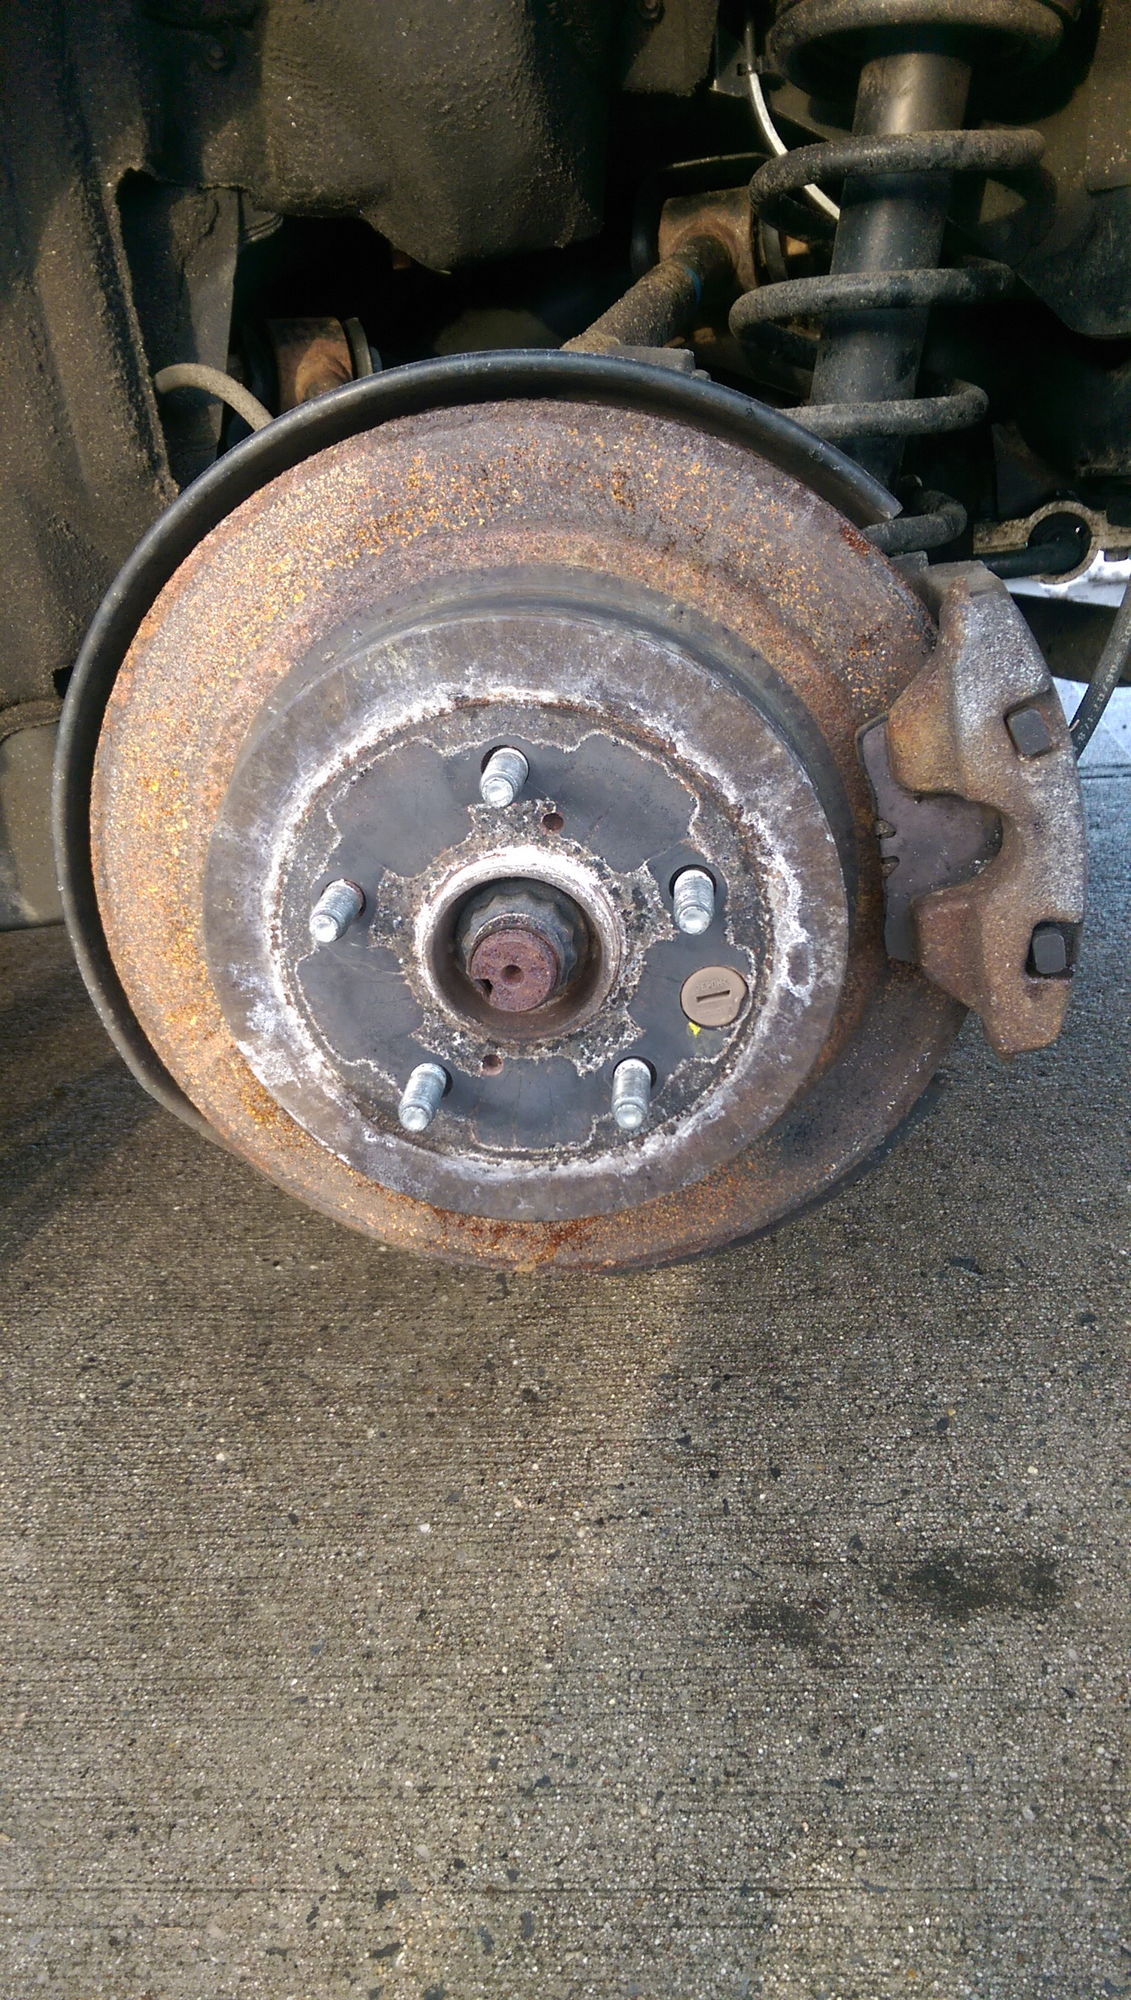 Used Lexus Gs 350 >> GS 350 07 rear brake rotor rust... - Club Lexus Forums